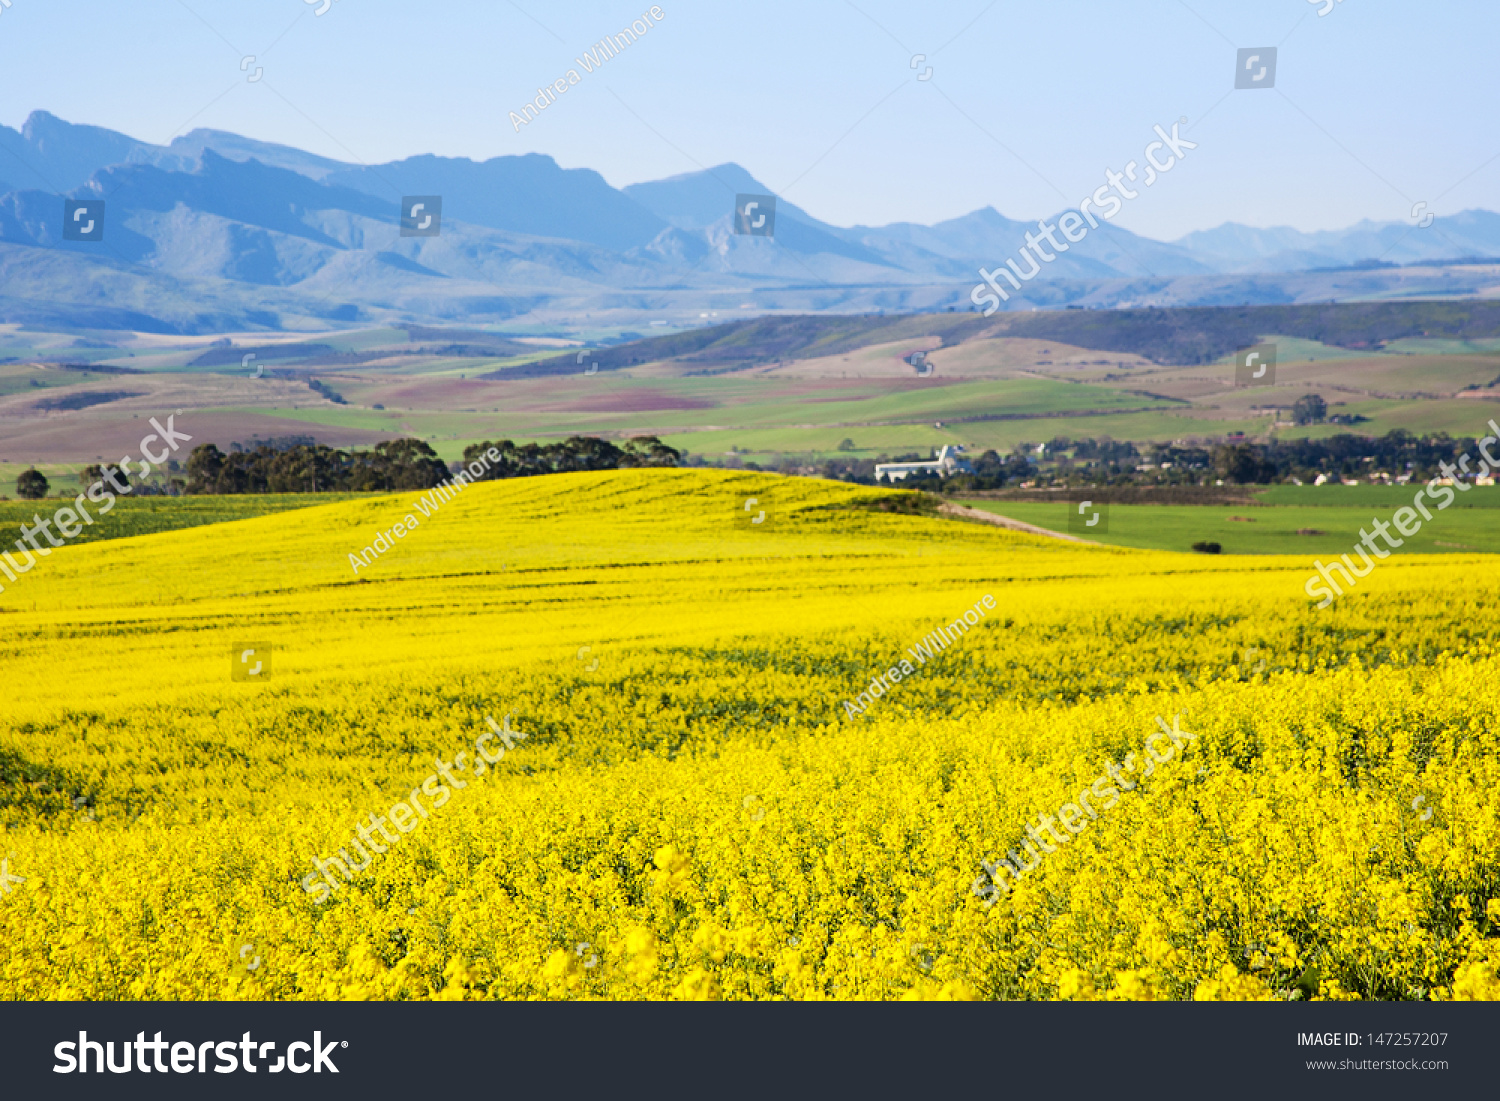 Scenic Rapeseed Fields Along Garden Route N Stock Photo   With Outstanding Rapeseed Fields Along The Garden Route N South Africa Rapeseed Is Used  To With Extraordinary Round Garden Buildings Also Bq Garden Vacs In Addition In The Garden And Metal Garden Benches For Sale As Well As Iveagh Gardens Seating Chart Additionally Plants Vs Zombies Garden Warfare Playstation From Shutterstockcom With   Outstanding Rapeseed Fields Along Garden Route N Stock Photo   With Extraordinary Rapeseed Fields Along The Garden Route N South Africa Rapeseed Is Used  To And Scenic Round Garden Buildings Also Bq Garden Vacs In Addition In The Garden From Shutterstockcom